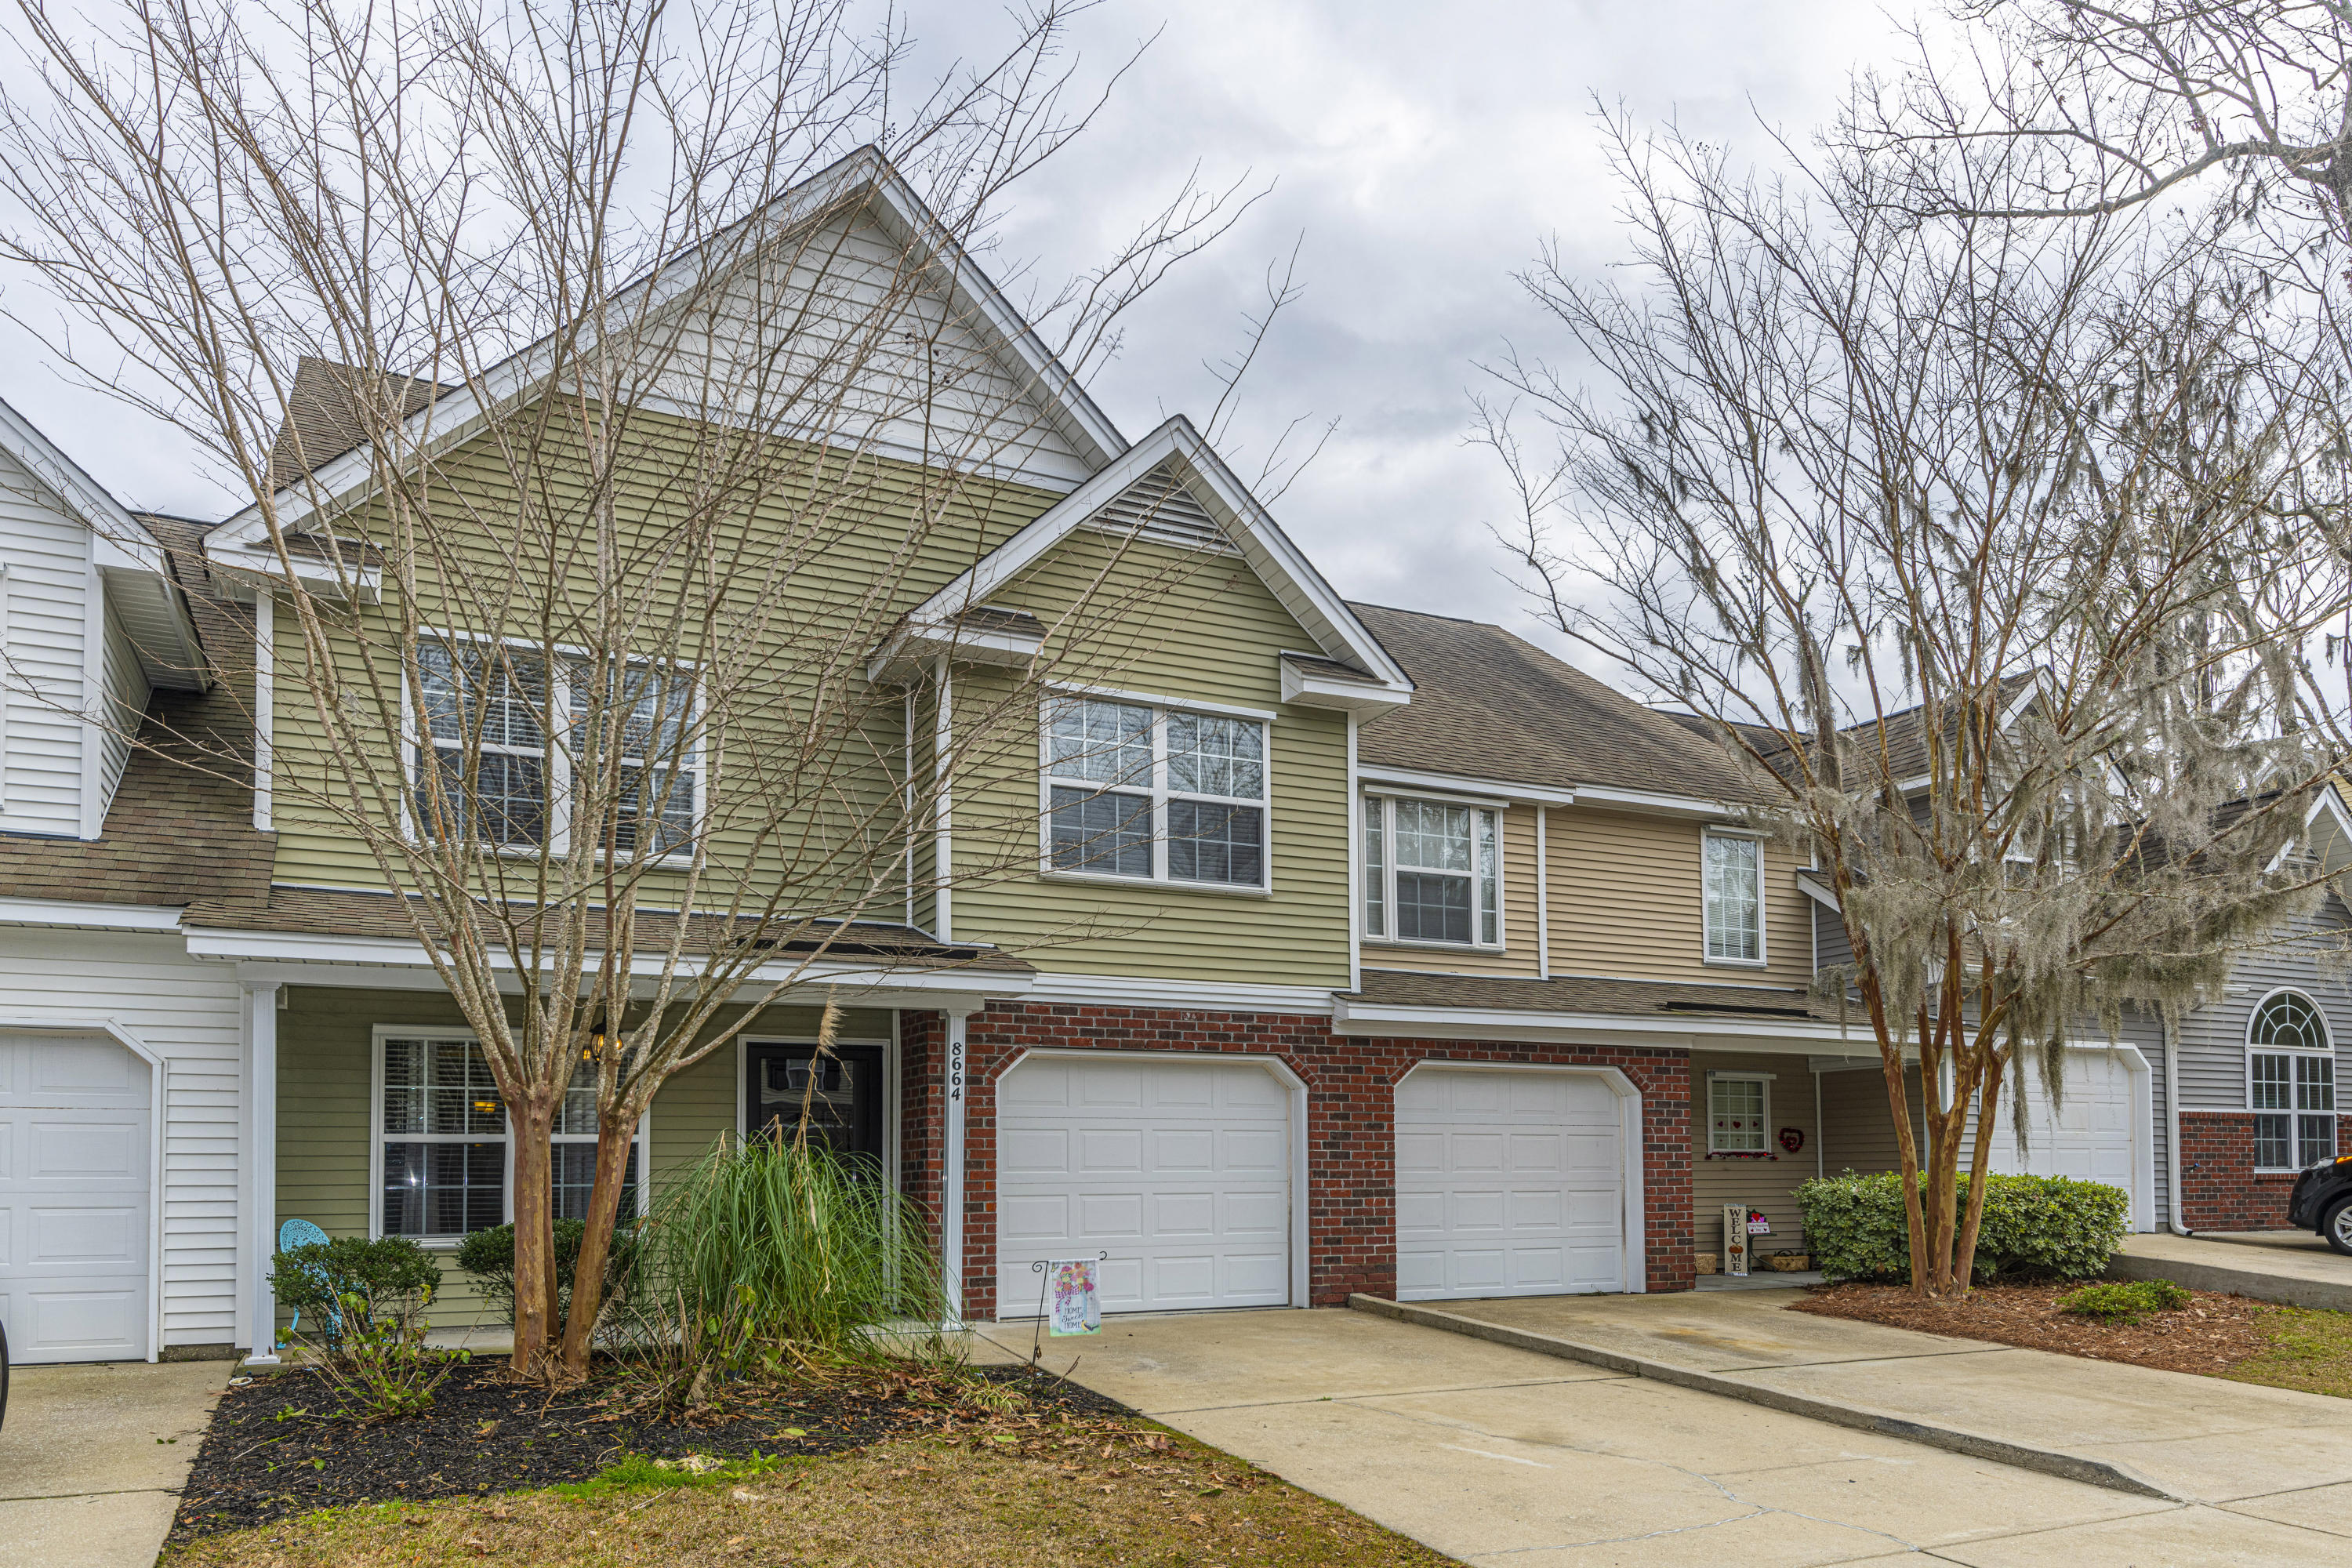 8664 Grassy Oak Trail North Charleston, Sc 29420